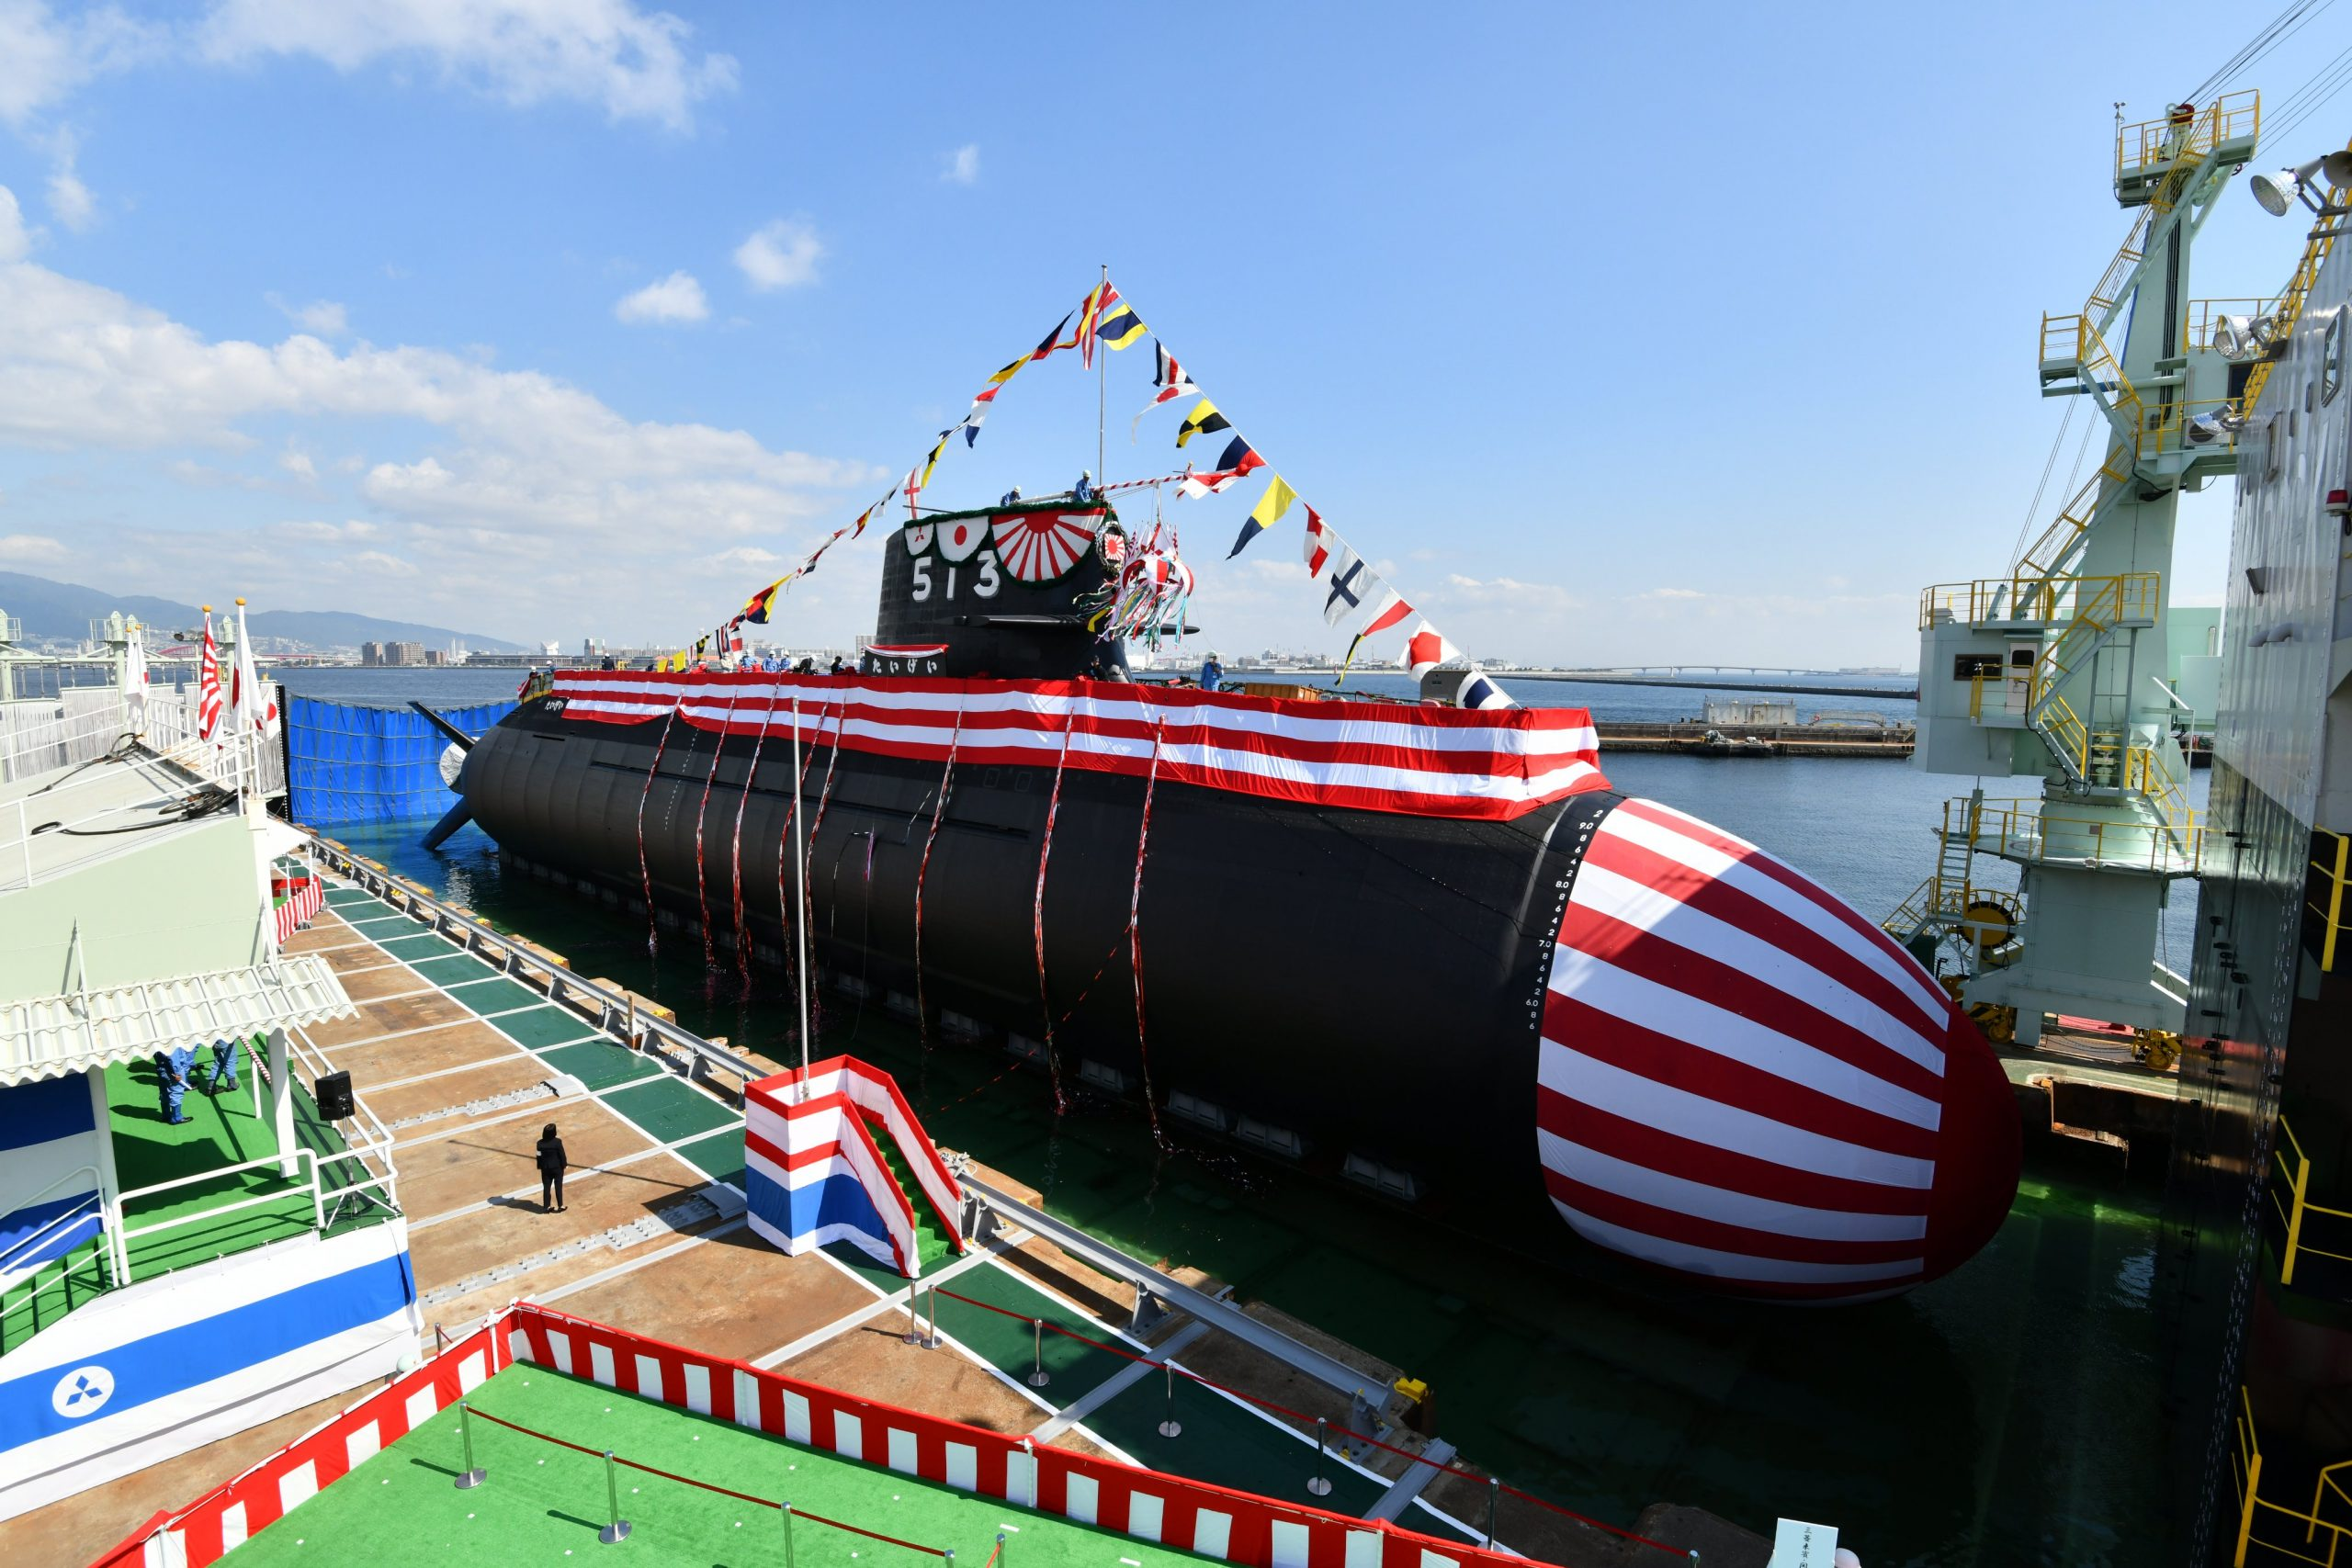 The launching ceremony for Taigei, the first-of-class 29SS submarines for the JMSDF. Commissioning is expected in 2022.